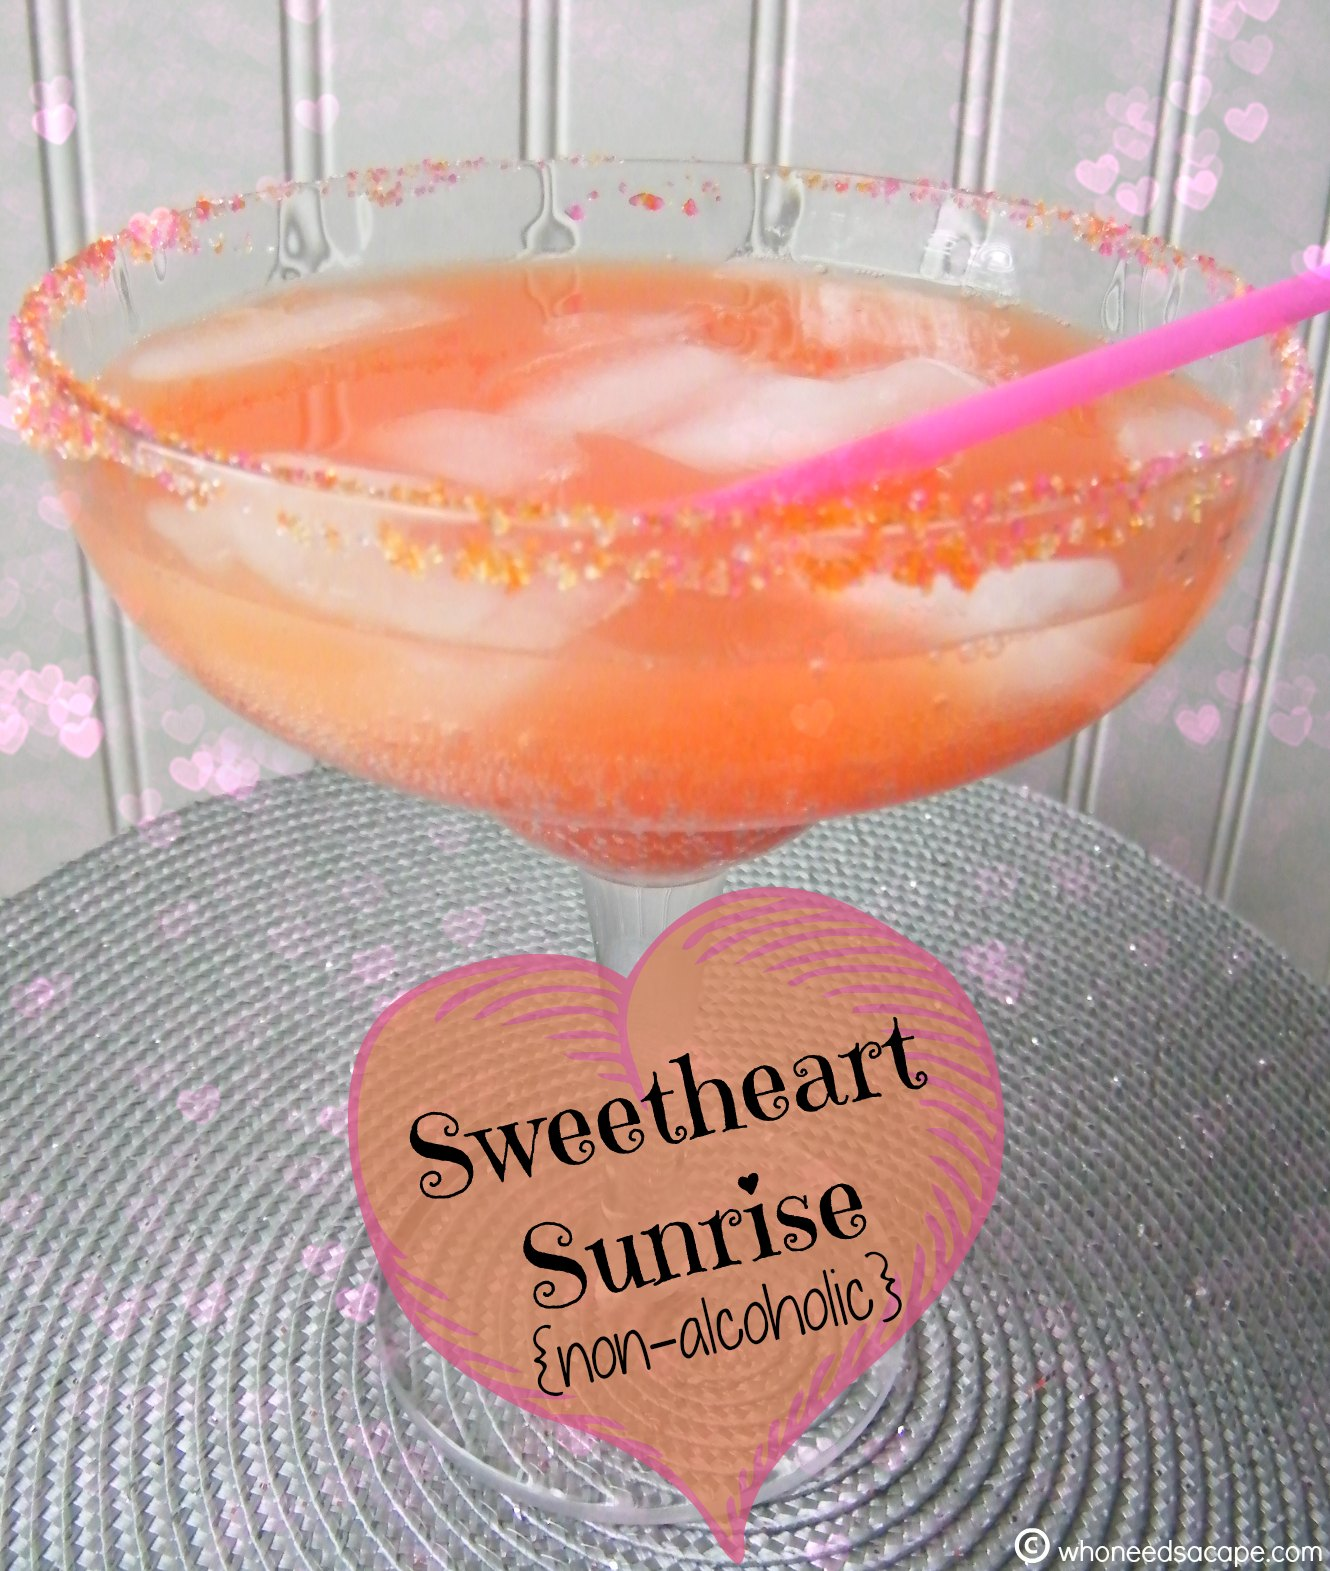 Sweetheart Sunrise Drink {non-alcoholic}